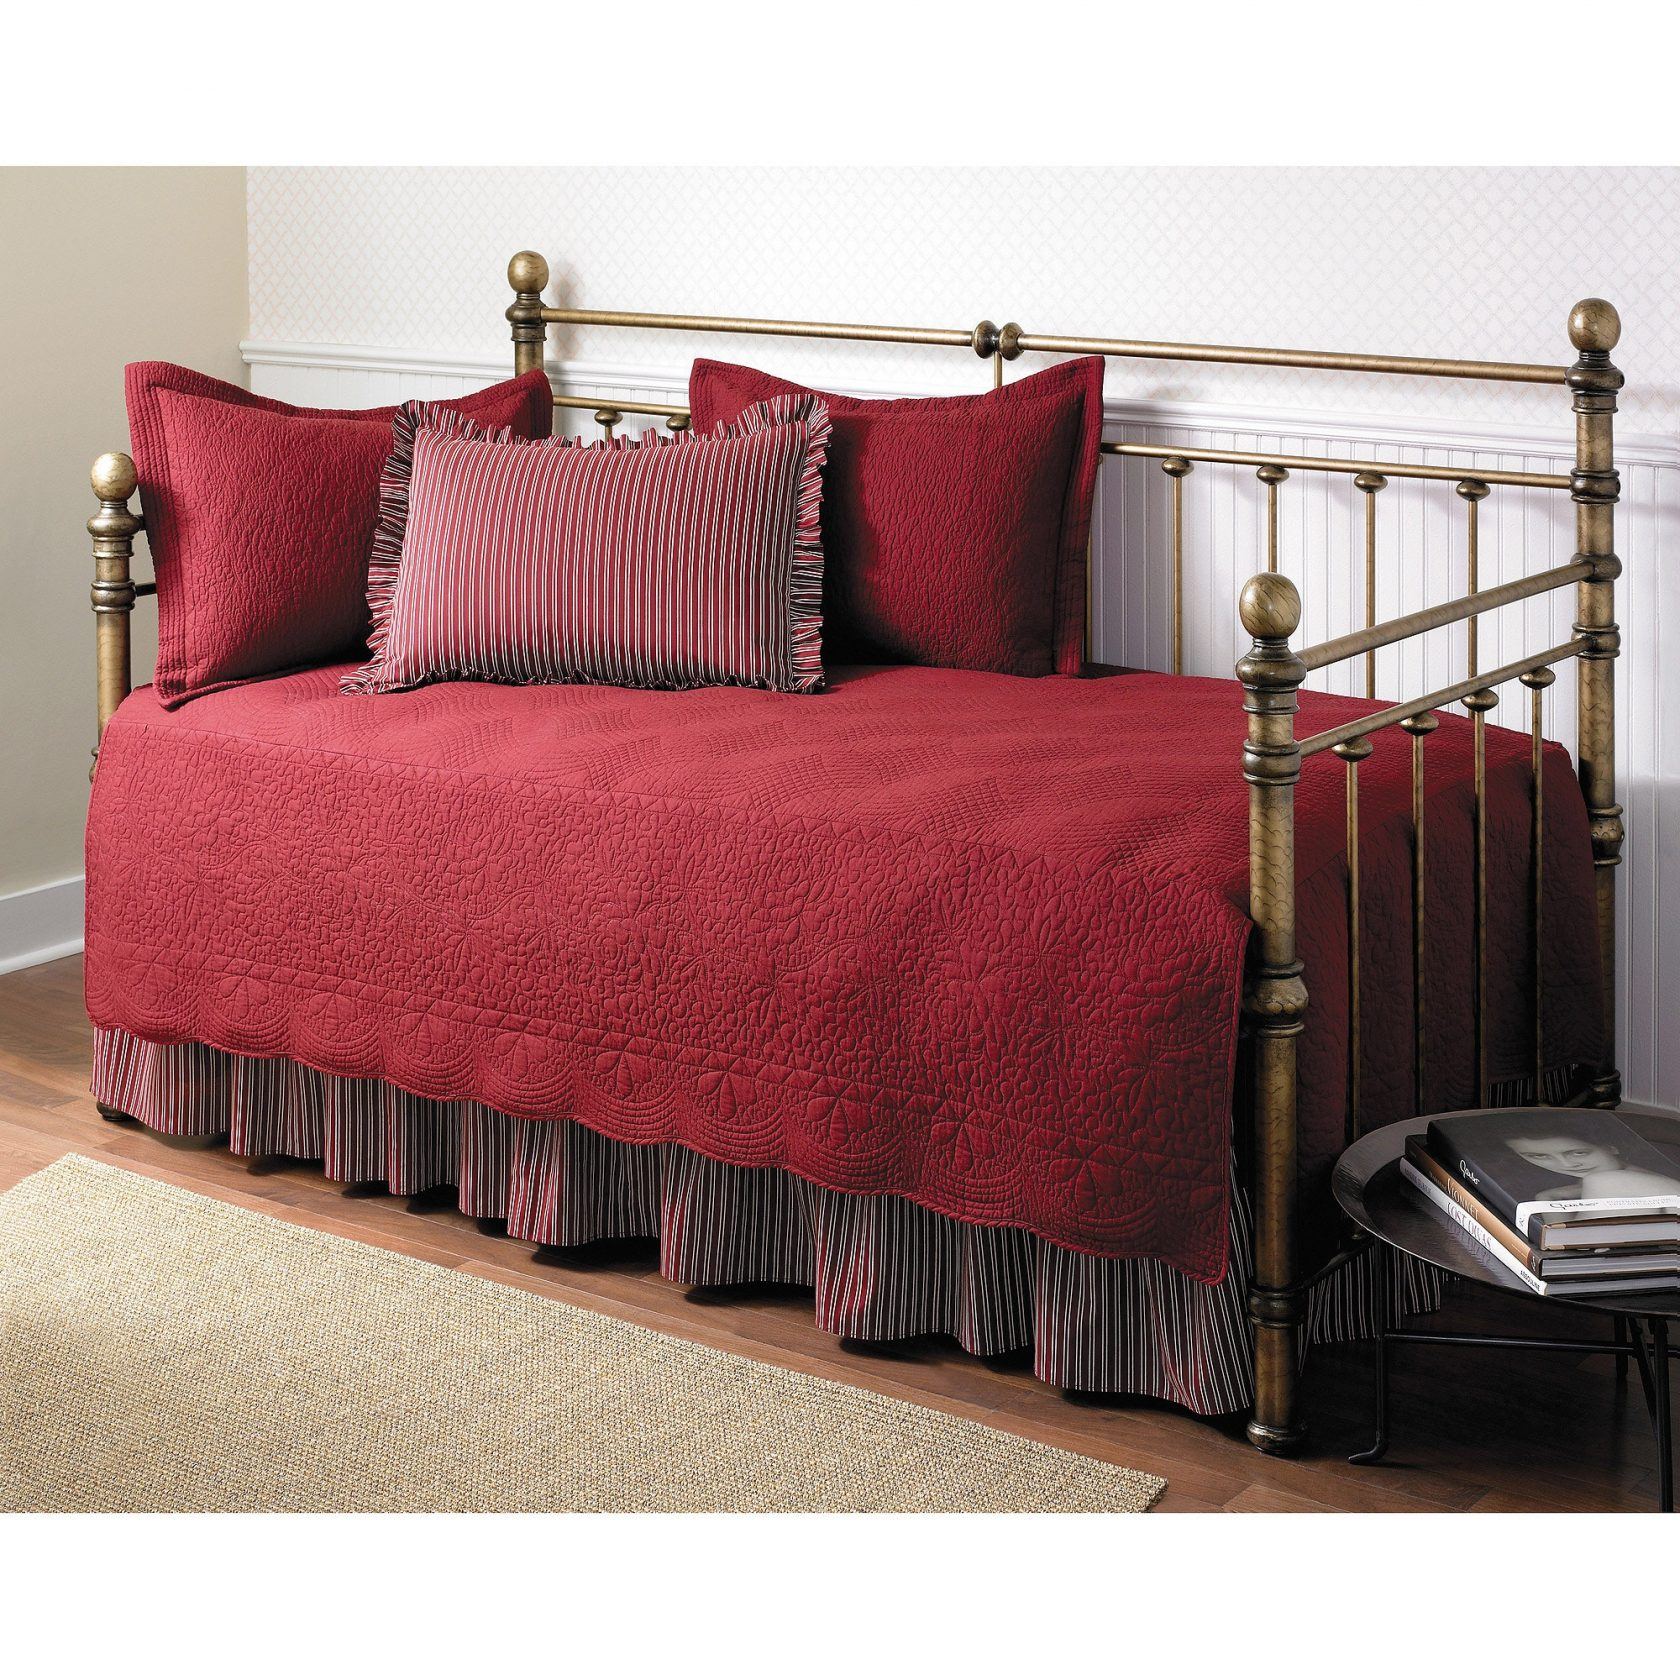 daybed bedding sets sears photo - 5